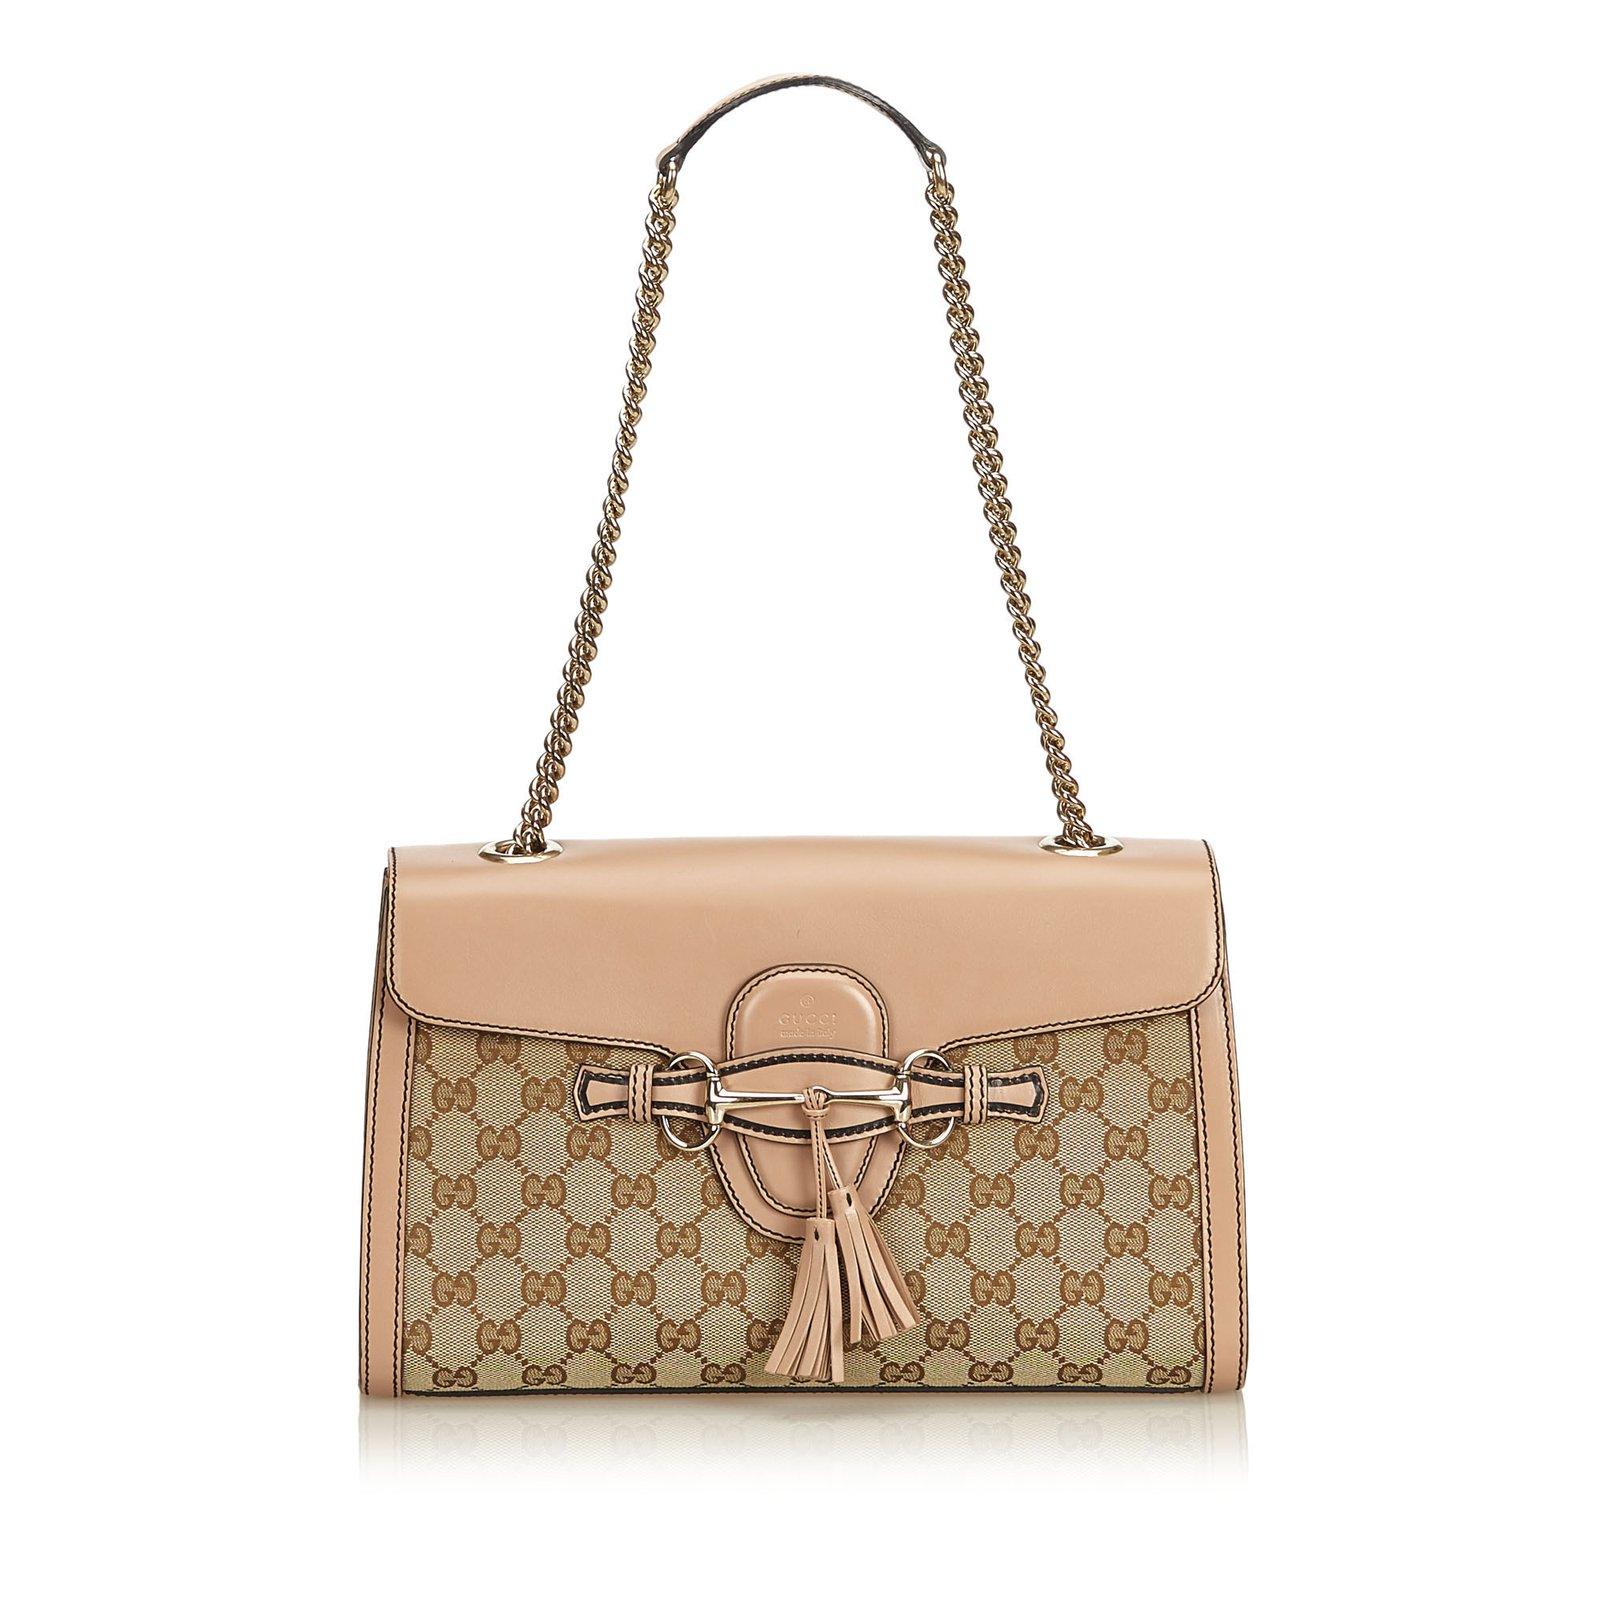 00d024806ab2 Gucci Medium Emily Shoulder Bag Handbags Leather